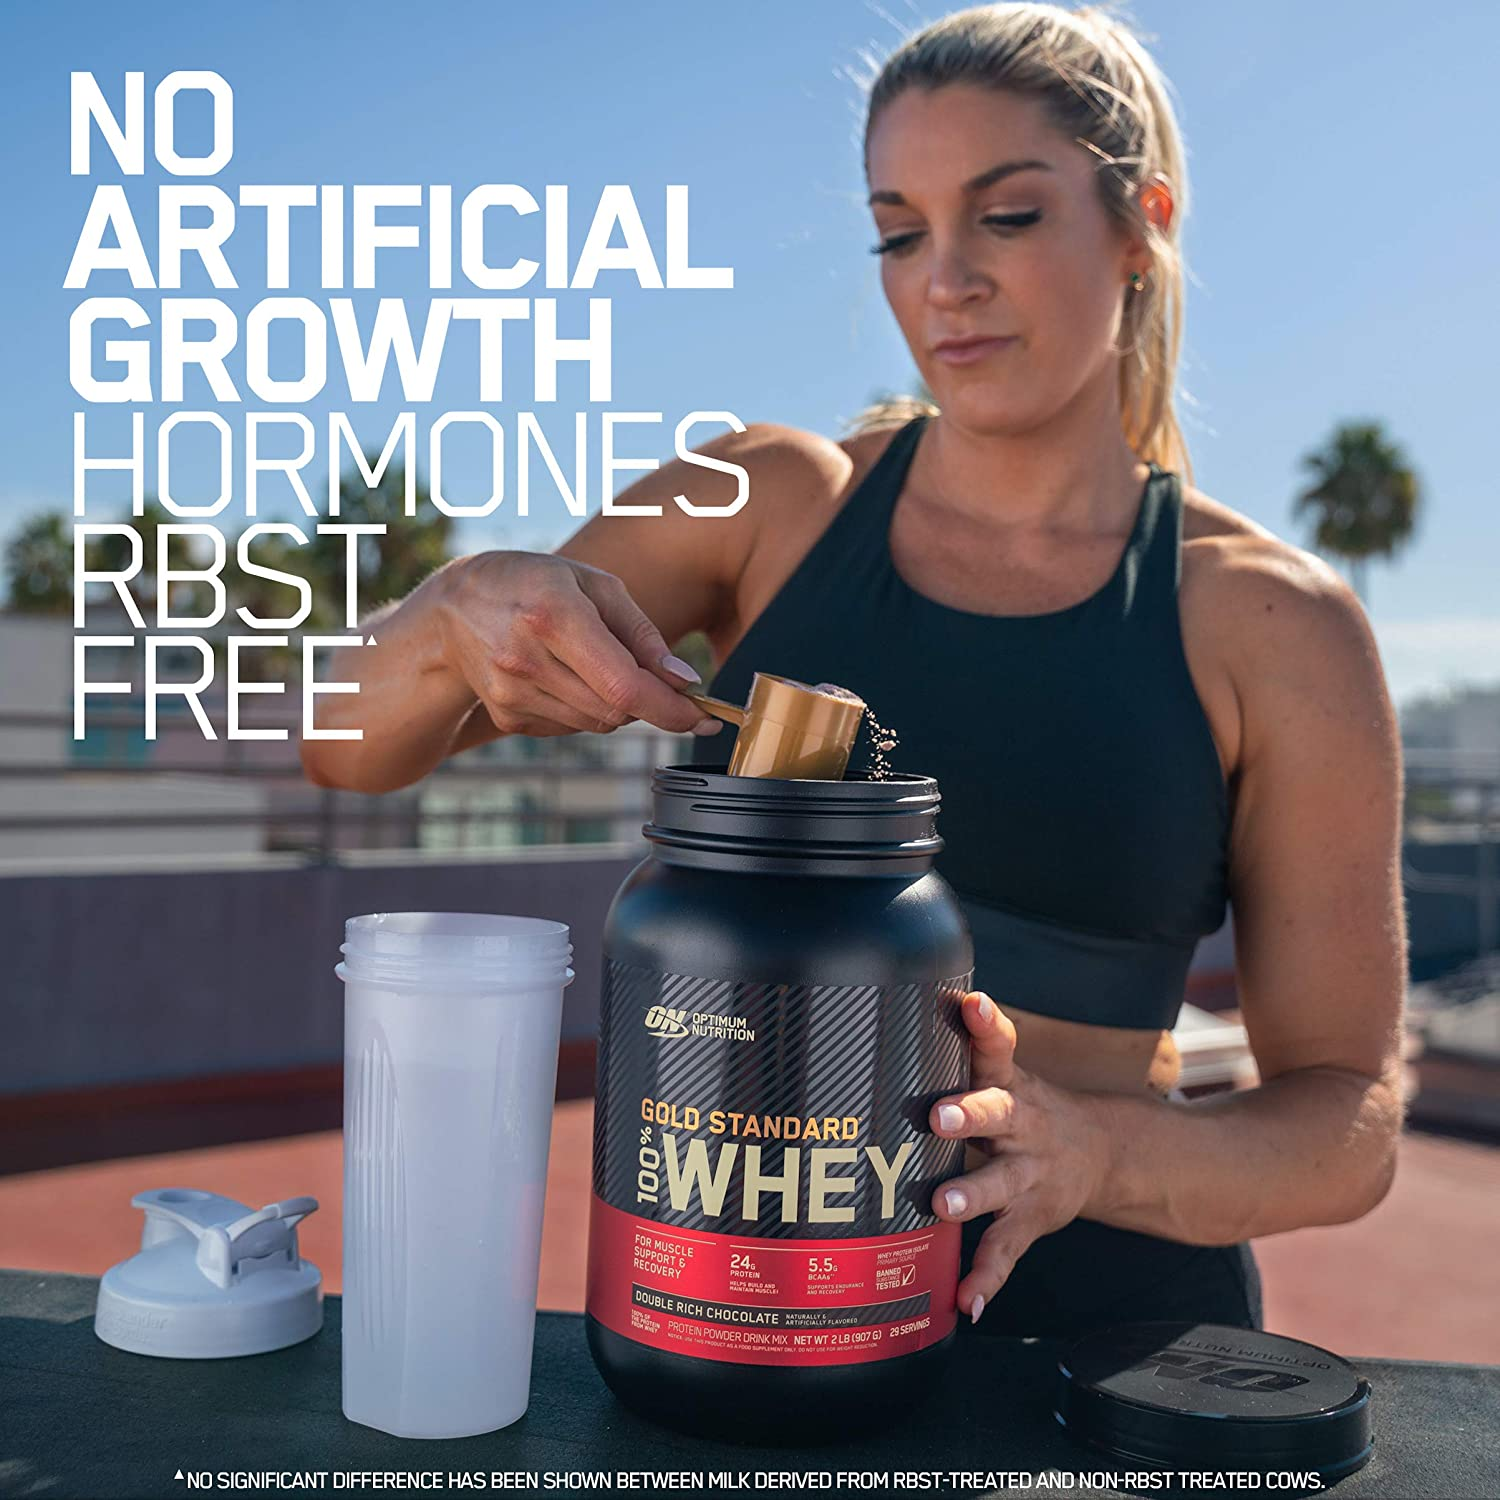 What taste is Whey Gold Standard delicious?